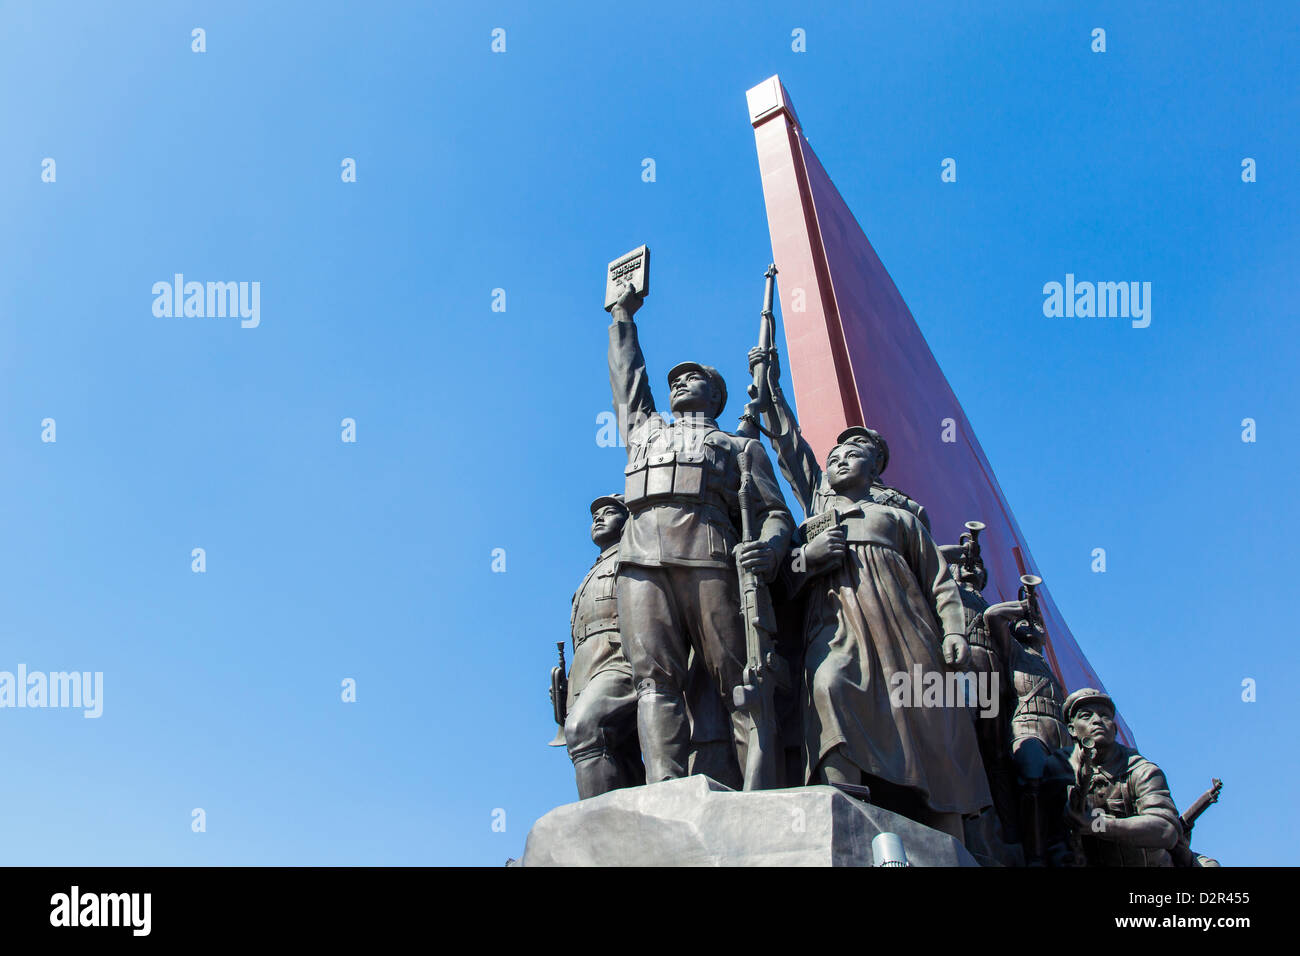 Mansudae Grand Monument depicting the Anti Japanese Revolutionary Struggle, Mansudae Assembly Hall, Pyongyang, North - Stock Image